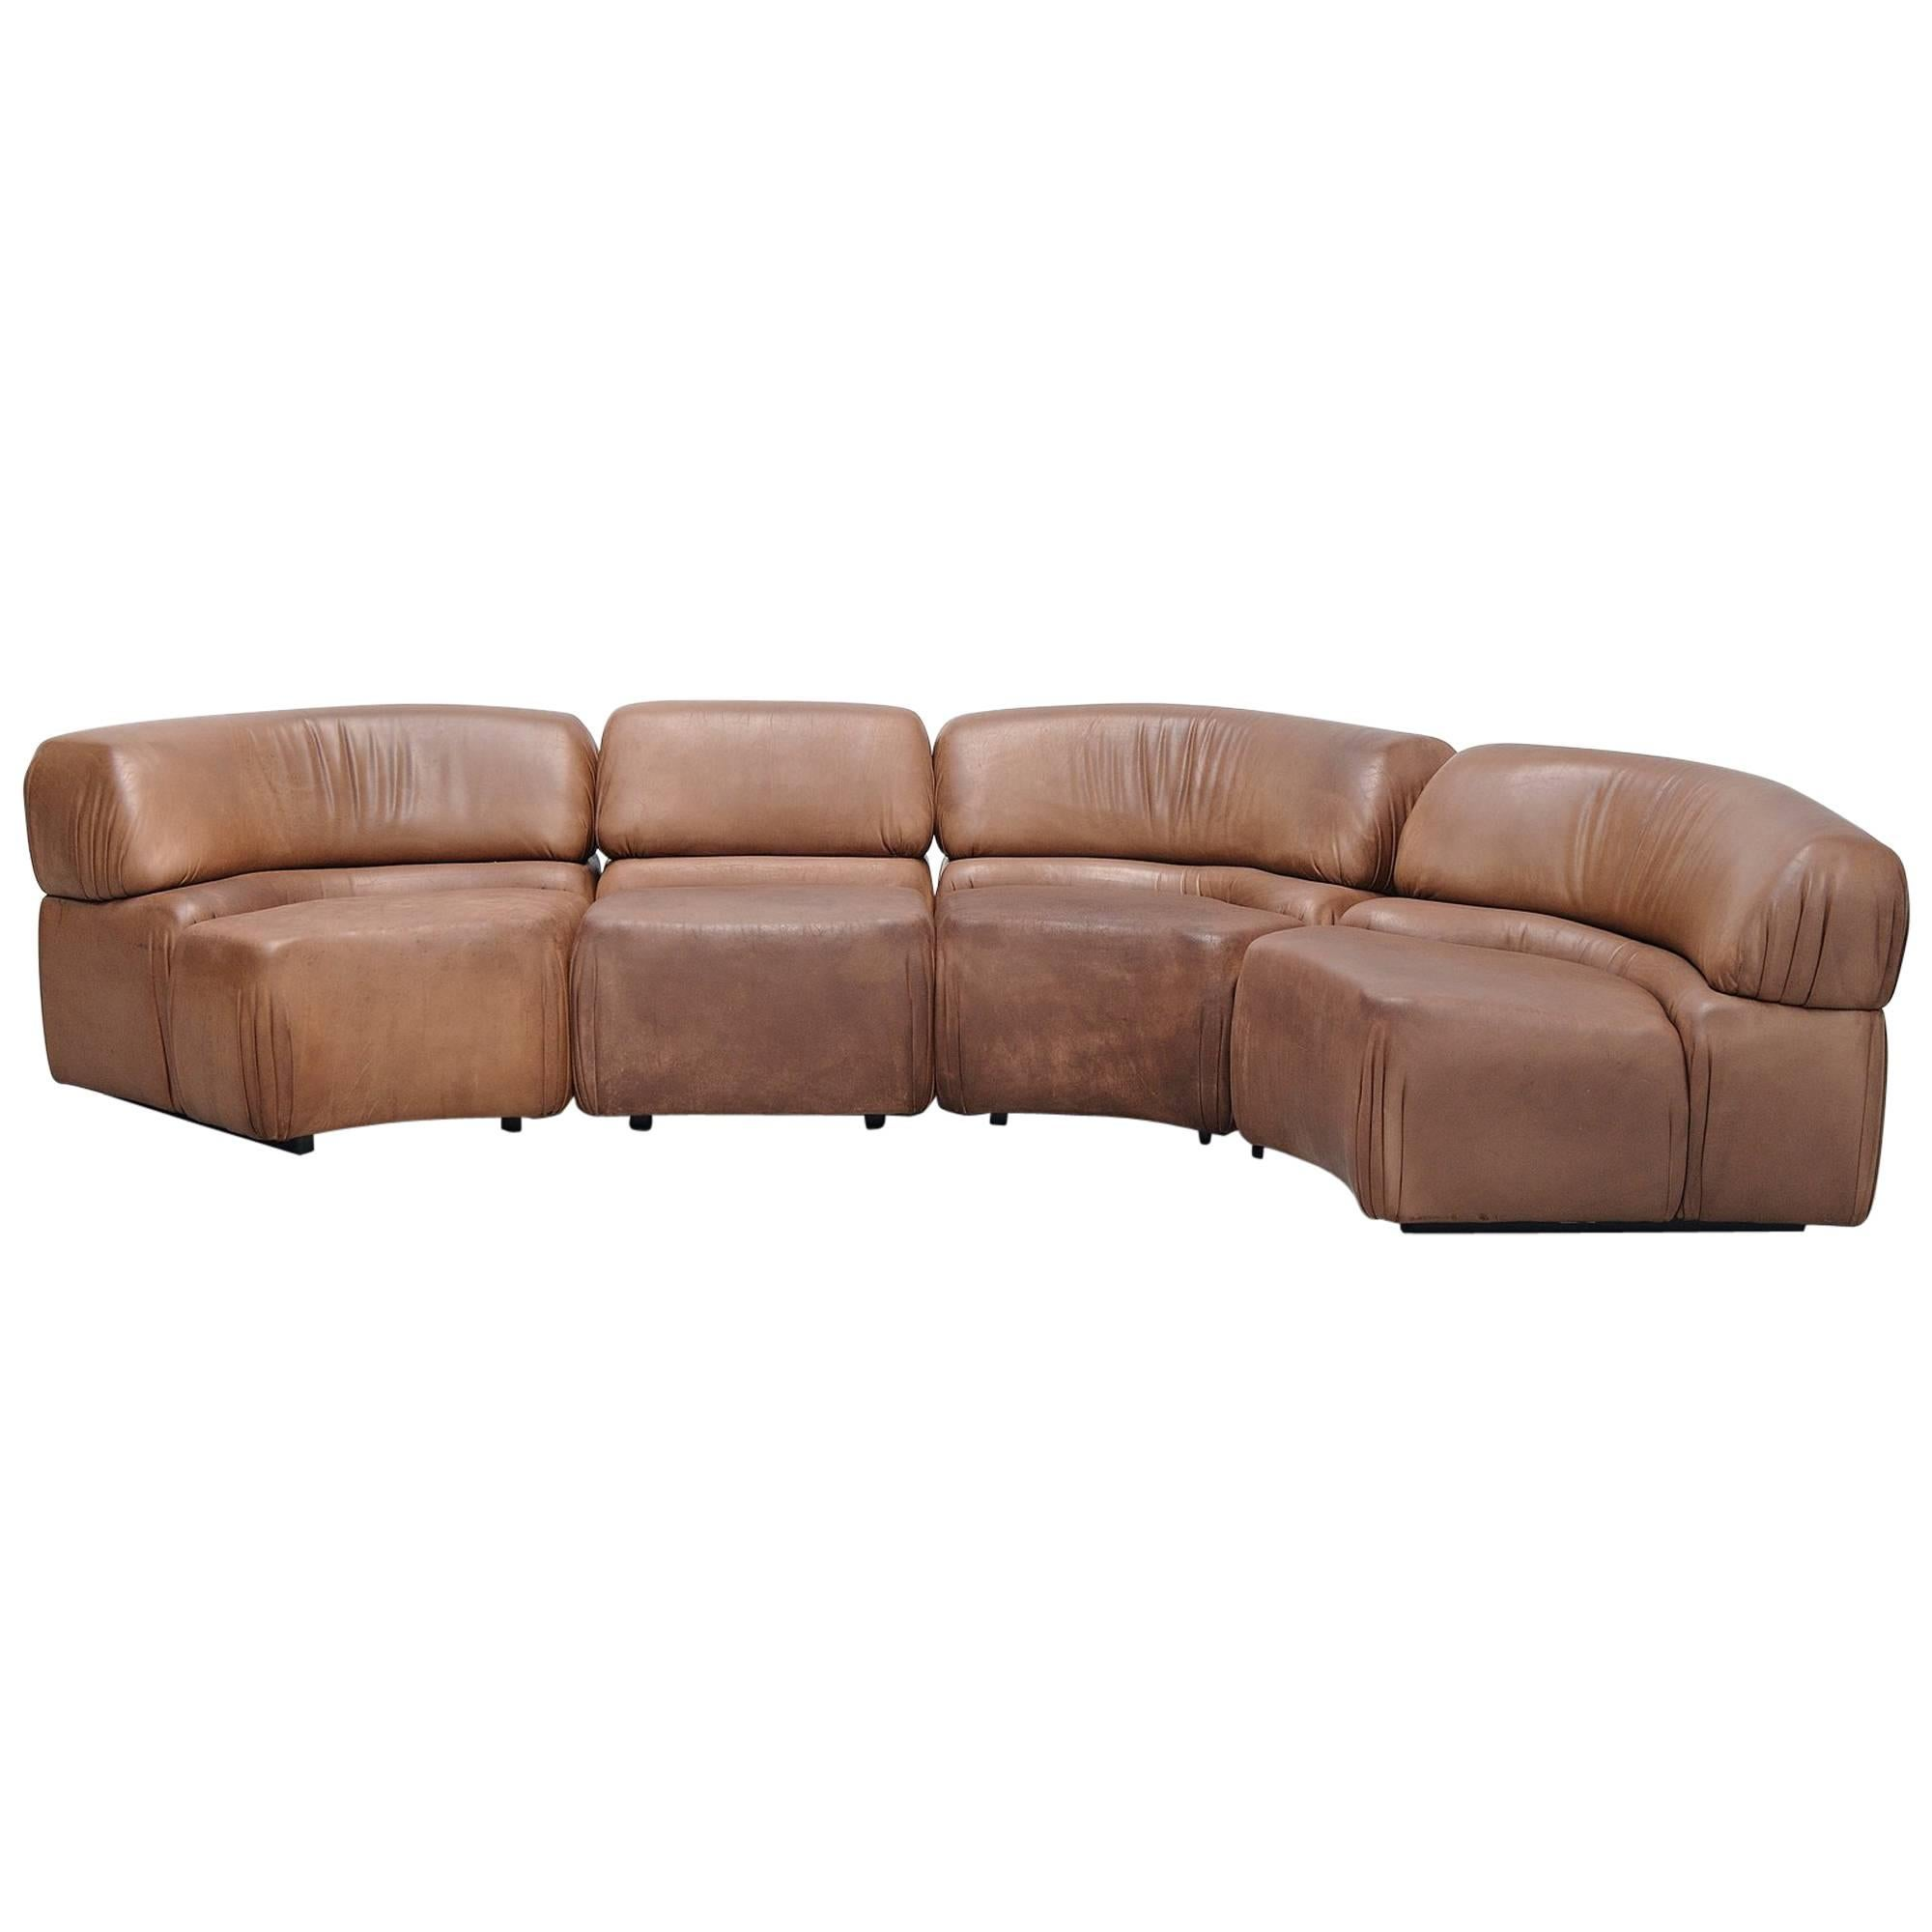 Retro Sofa Leather Retro Sofa Danish Design 1960 1970